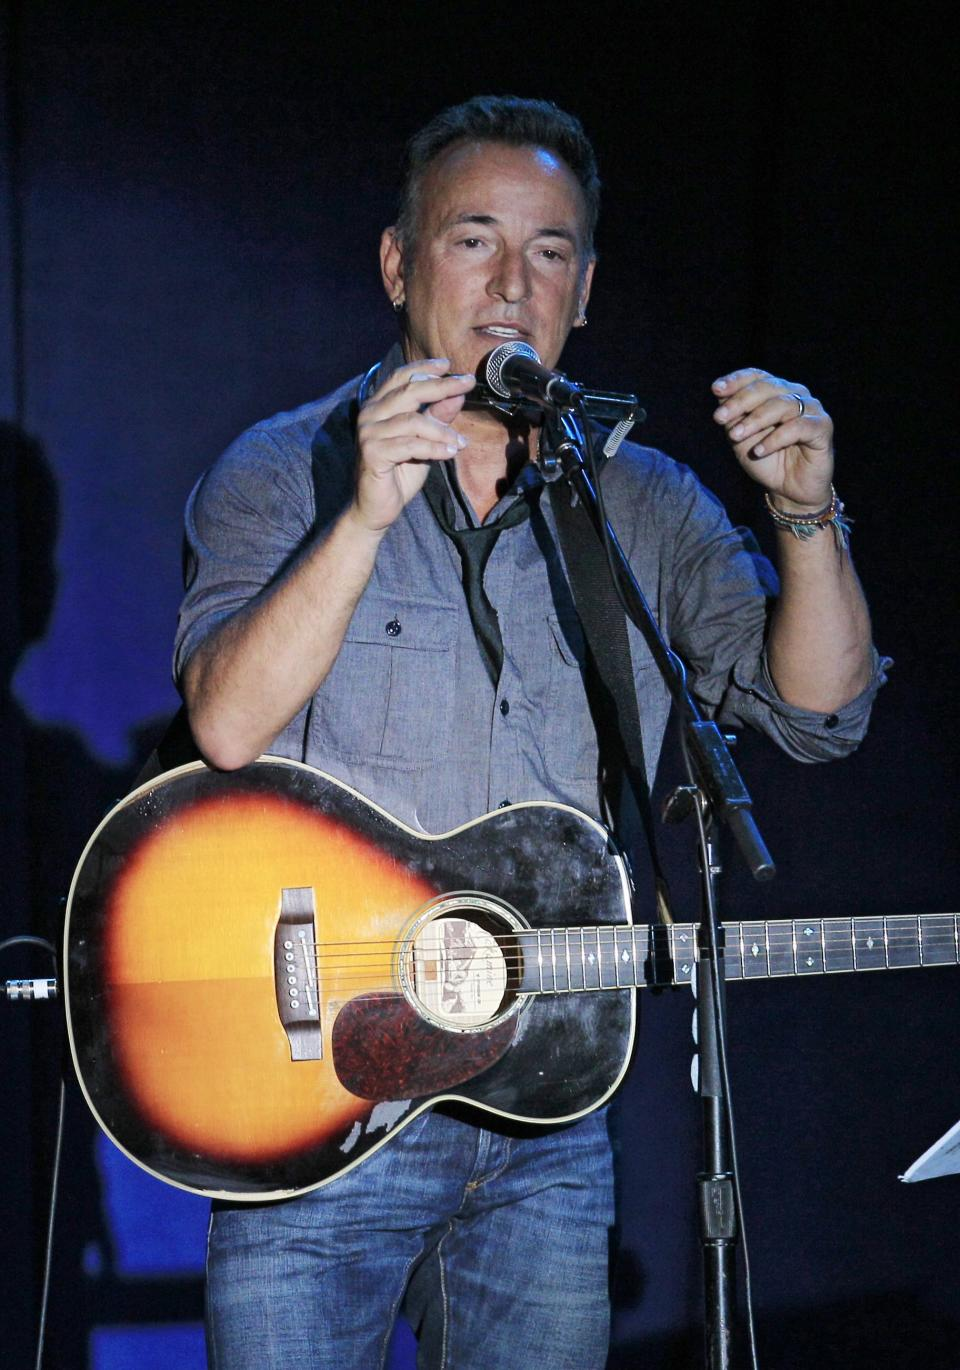 Singer-songwriter Bruce Springsteen performs at a campaign event for President Barack Obama, Thursday, Oct. 18, 2012, in Parma, Ohio. (AP Photo/Tony Dejak)